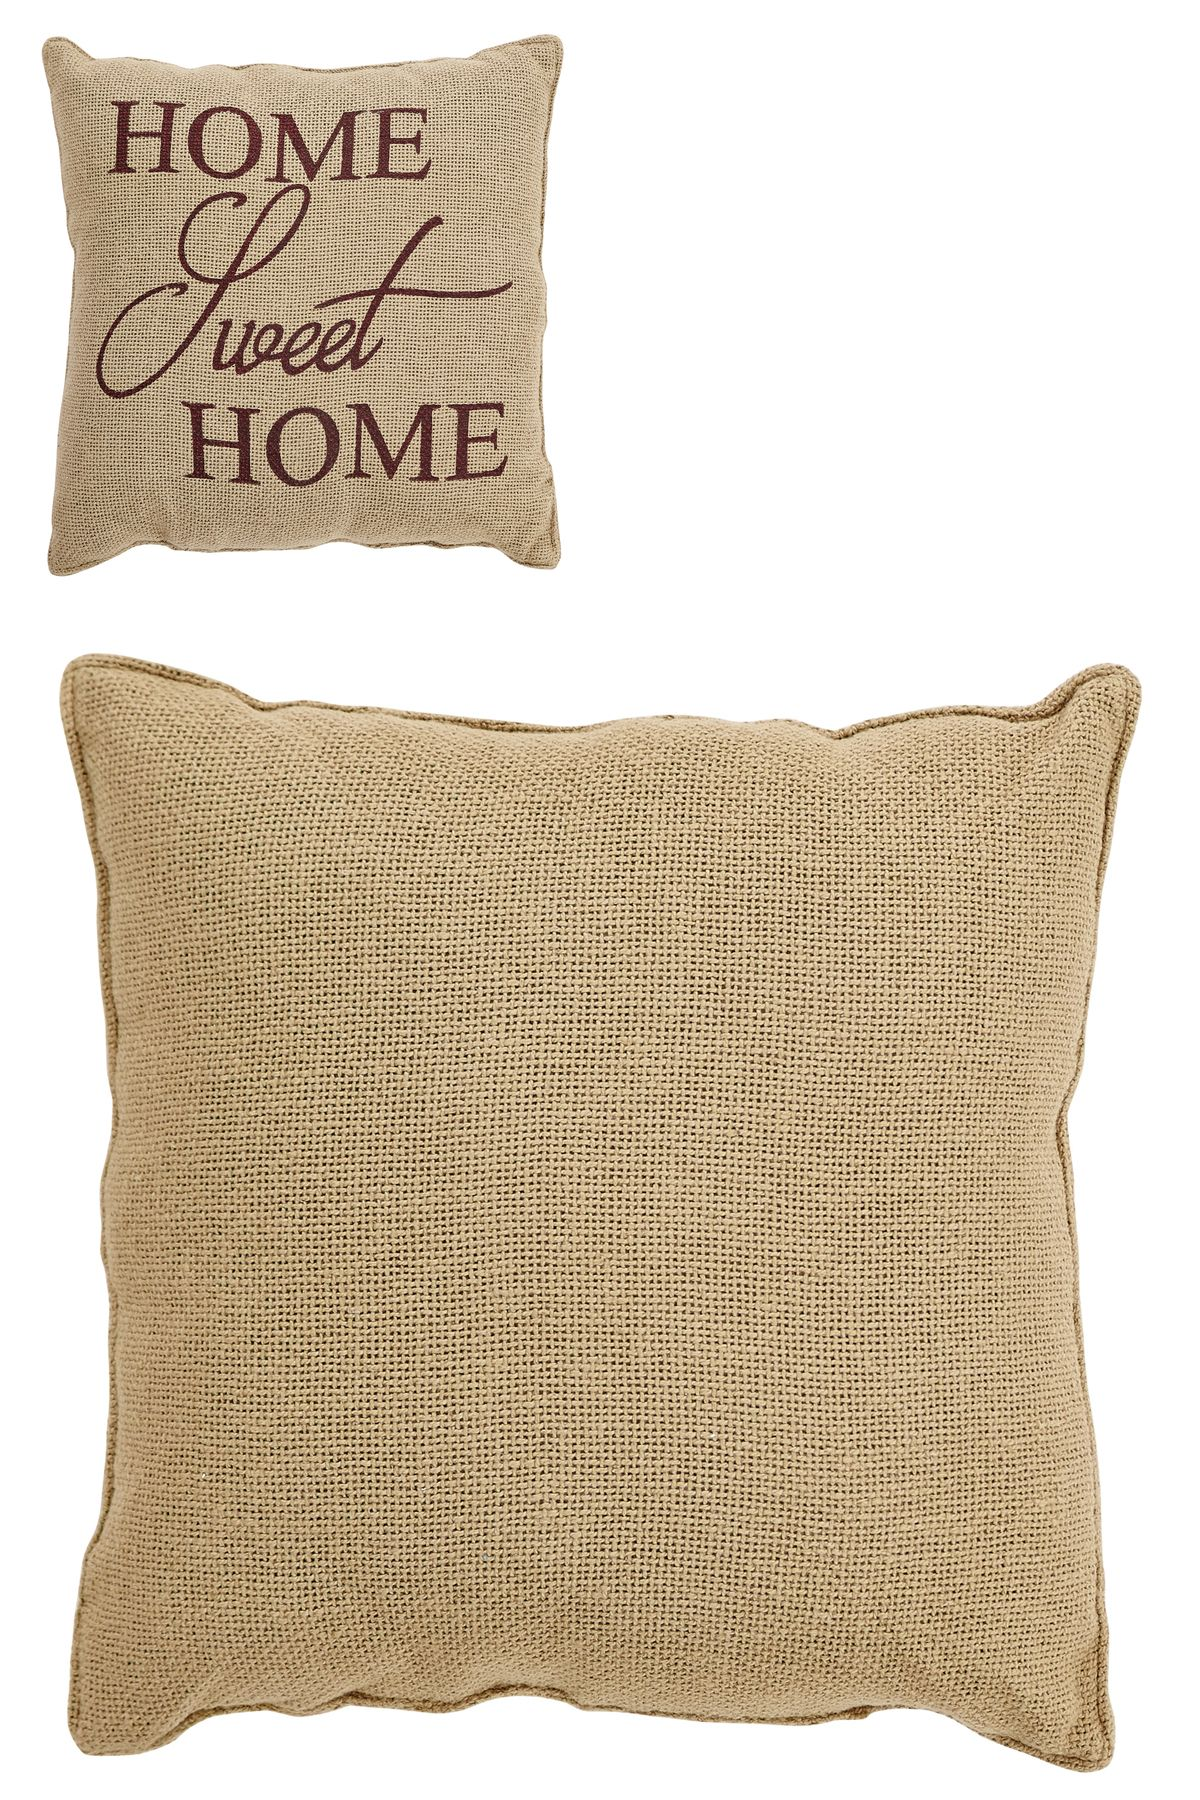 Decorative Bed Pillows 115630 Home Sweet Home Burlap 12 X 12 Primitive Farmhouse Throw Pillow Vhc Brands Buy It No Decorative Bed Pillows 115630 In 2019